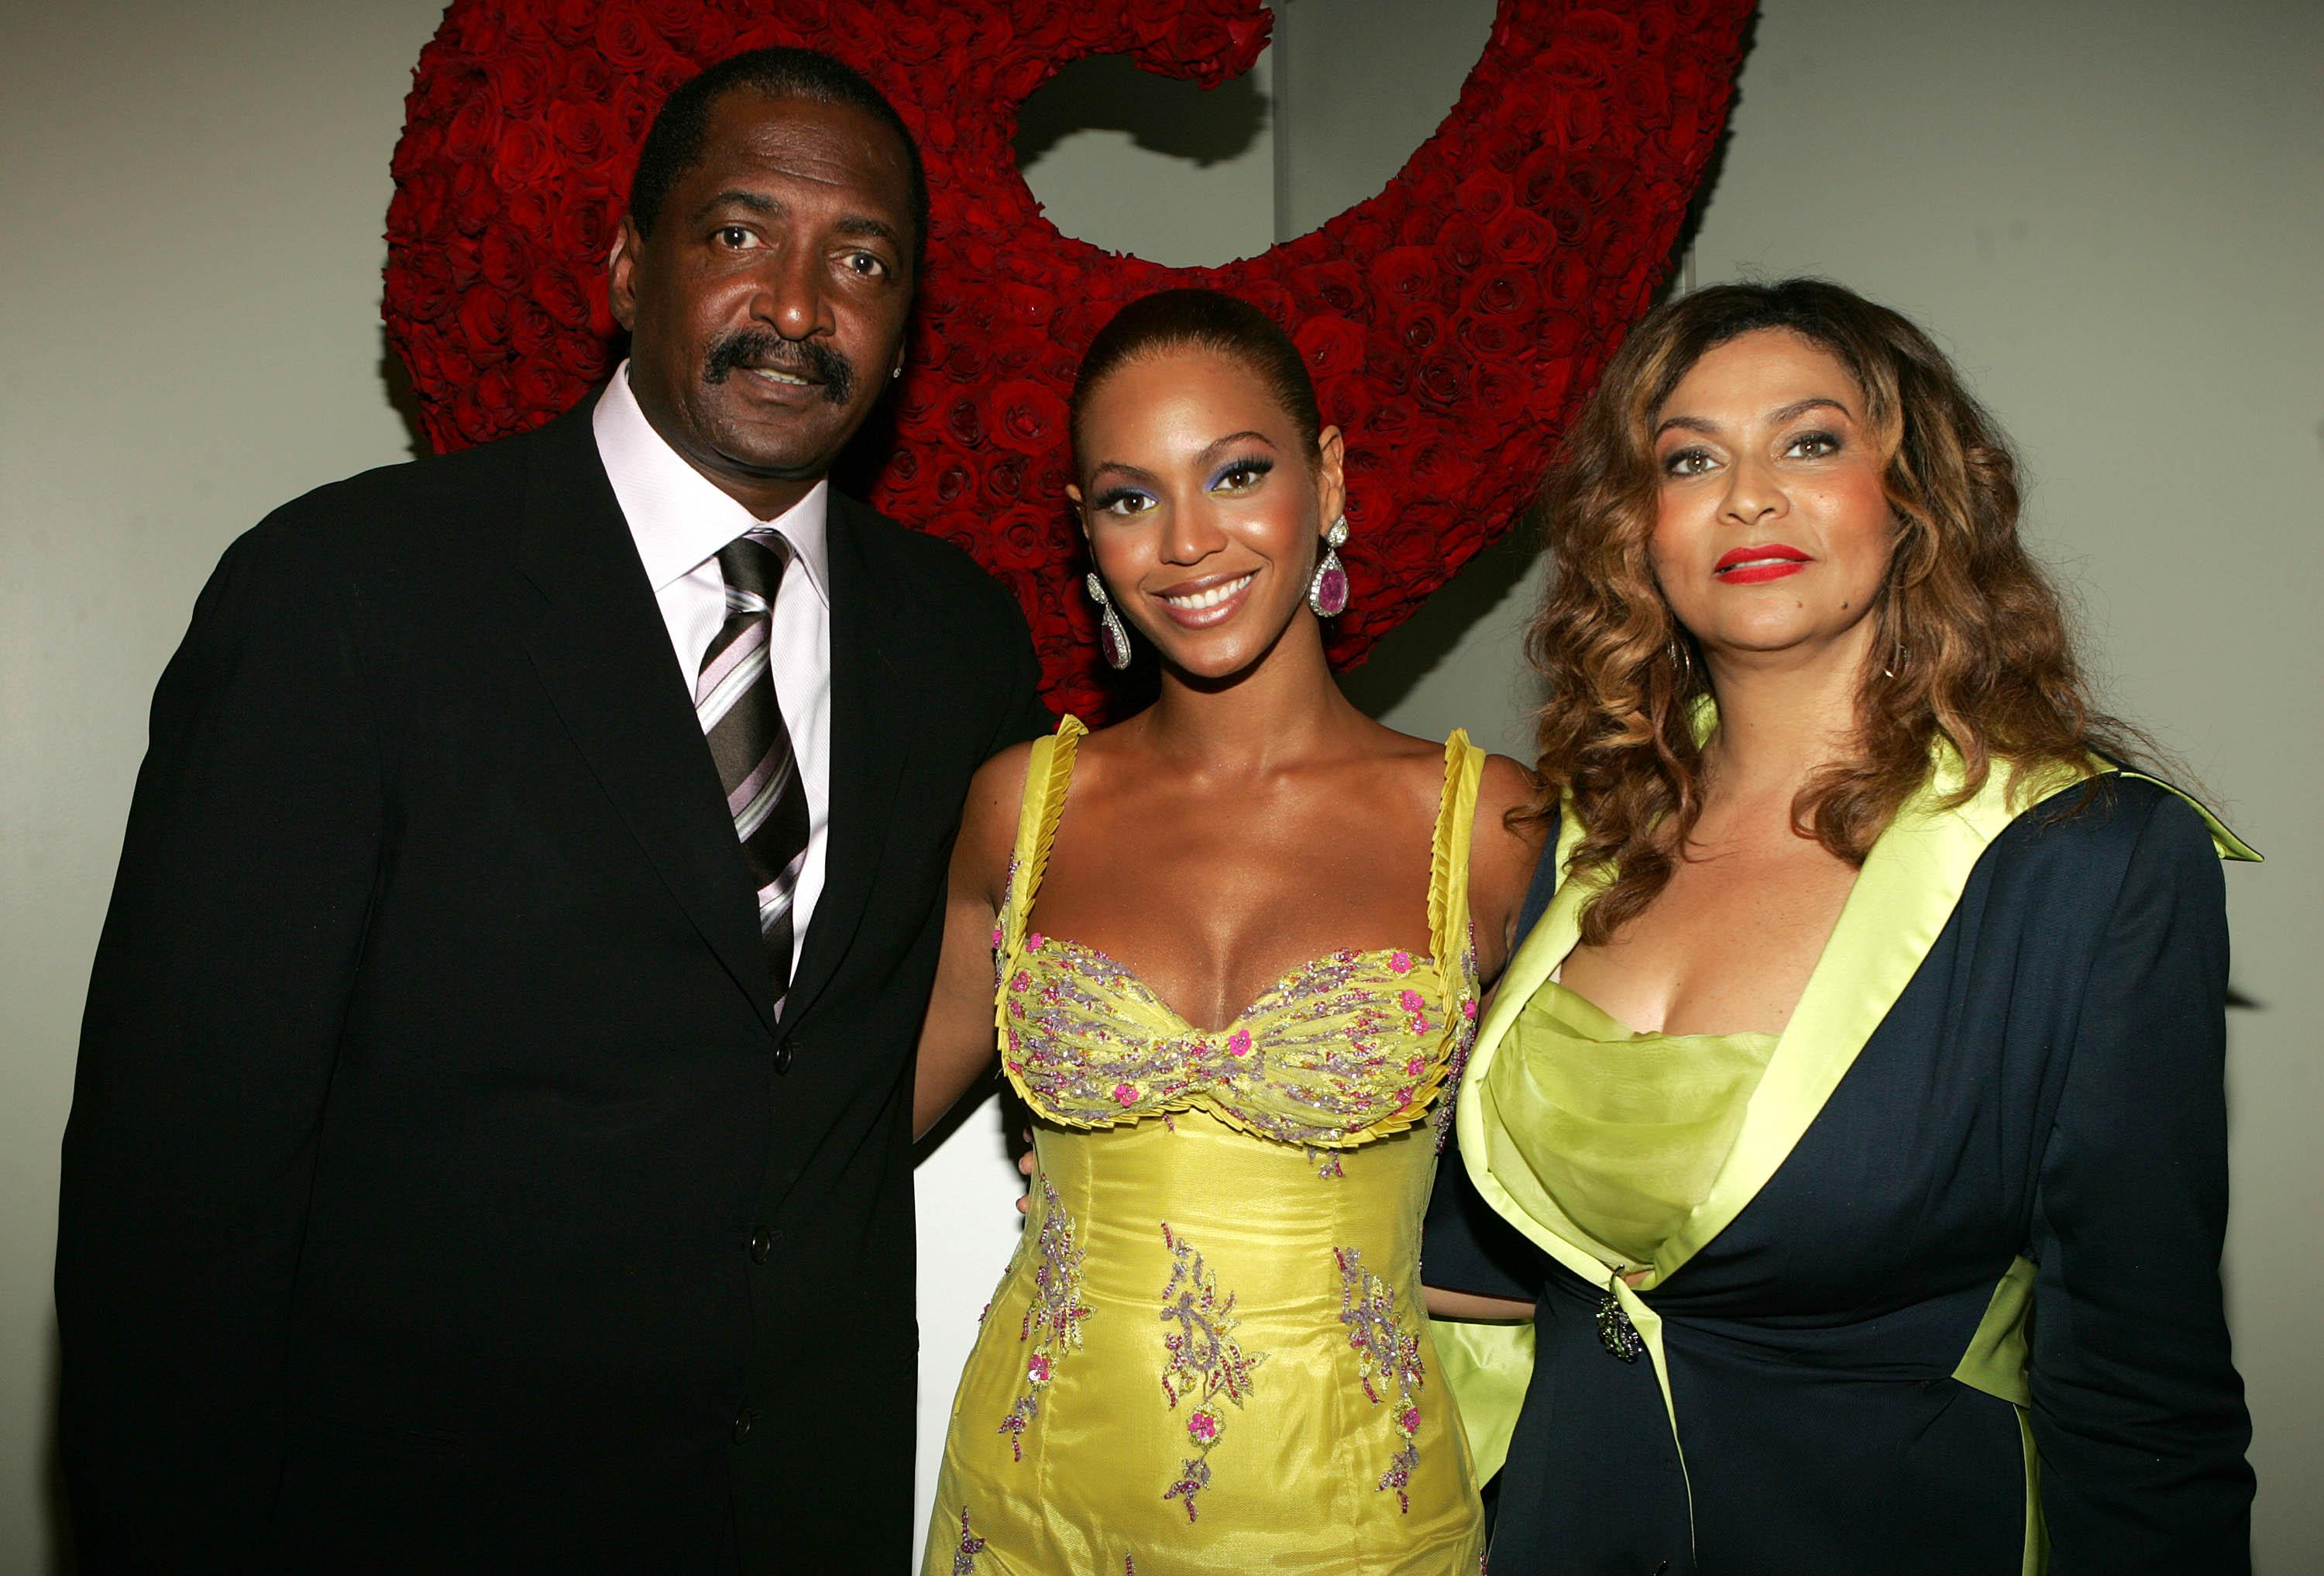 Beyonce photographed with her parents, Mathew and Tina Knowles, at an event in 2005 [Photo: Getty]